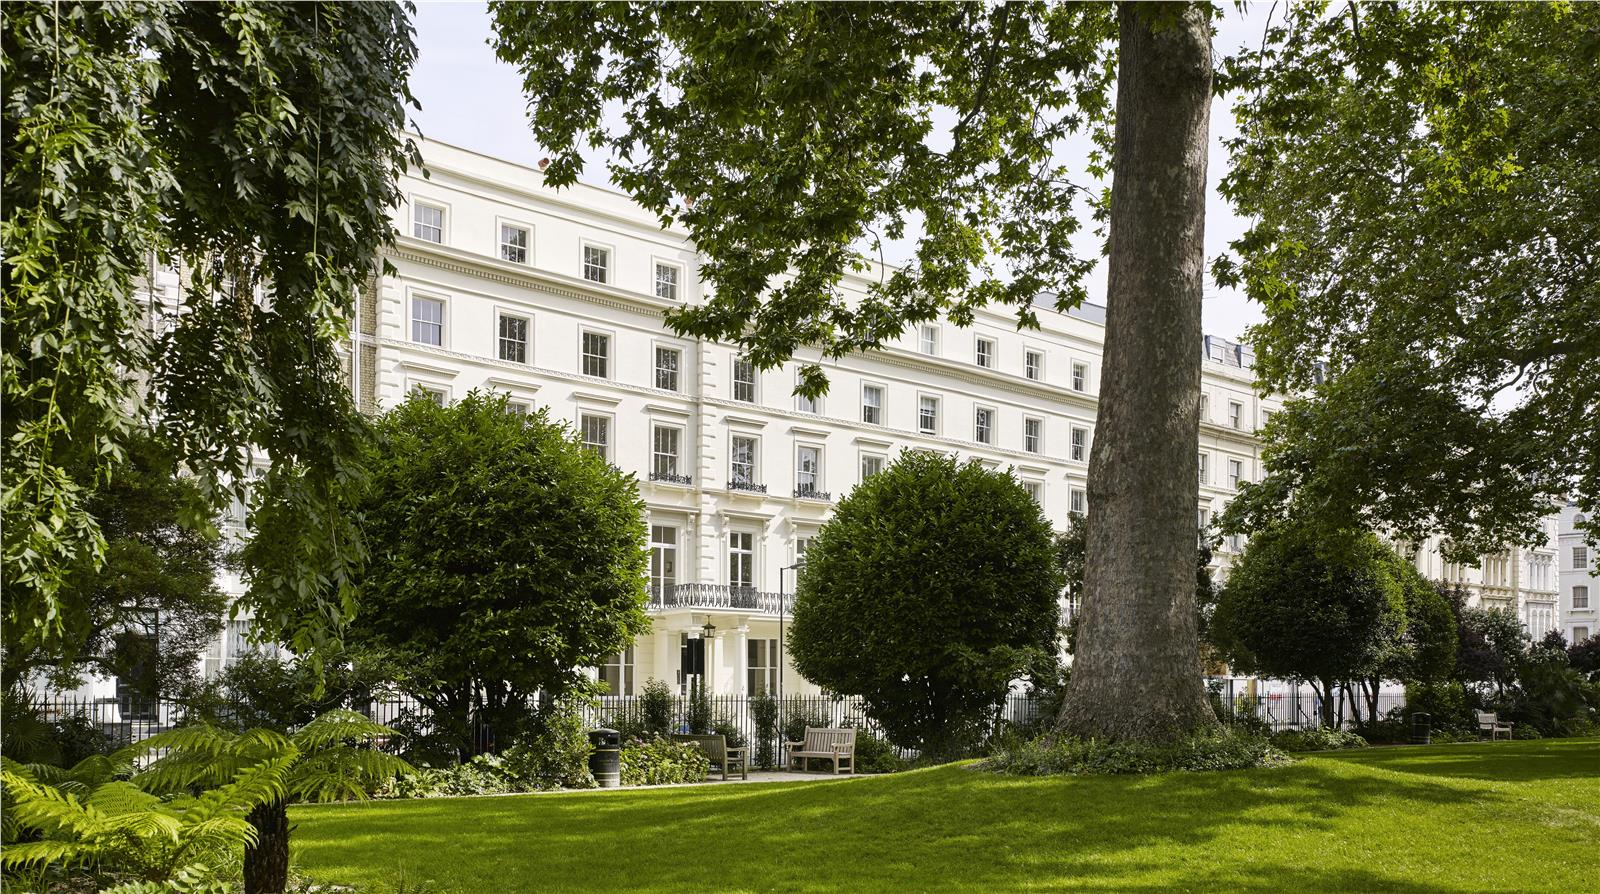 7-12 Leinster Square, London, Greater London, W2